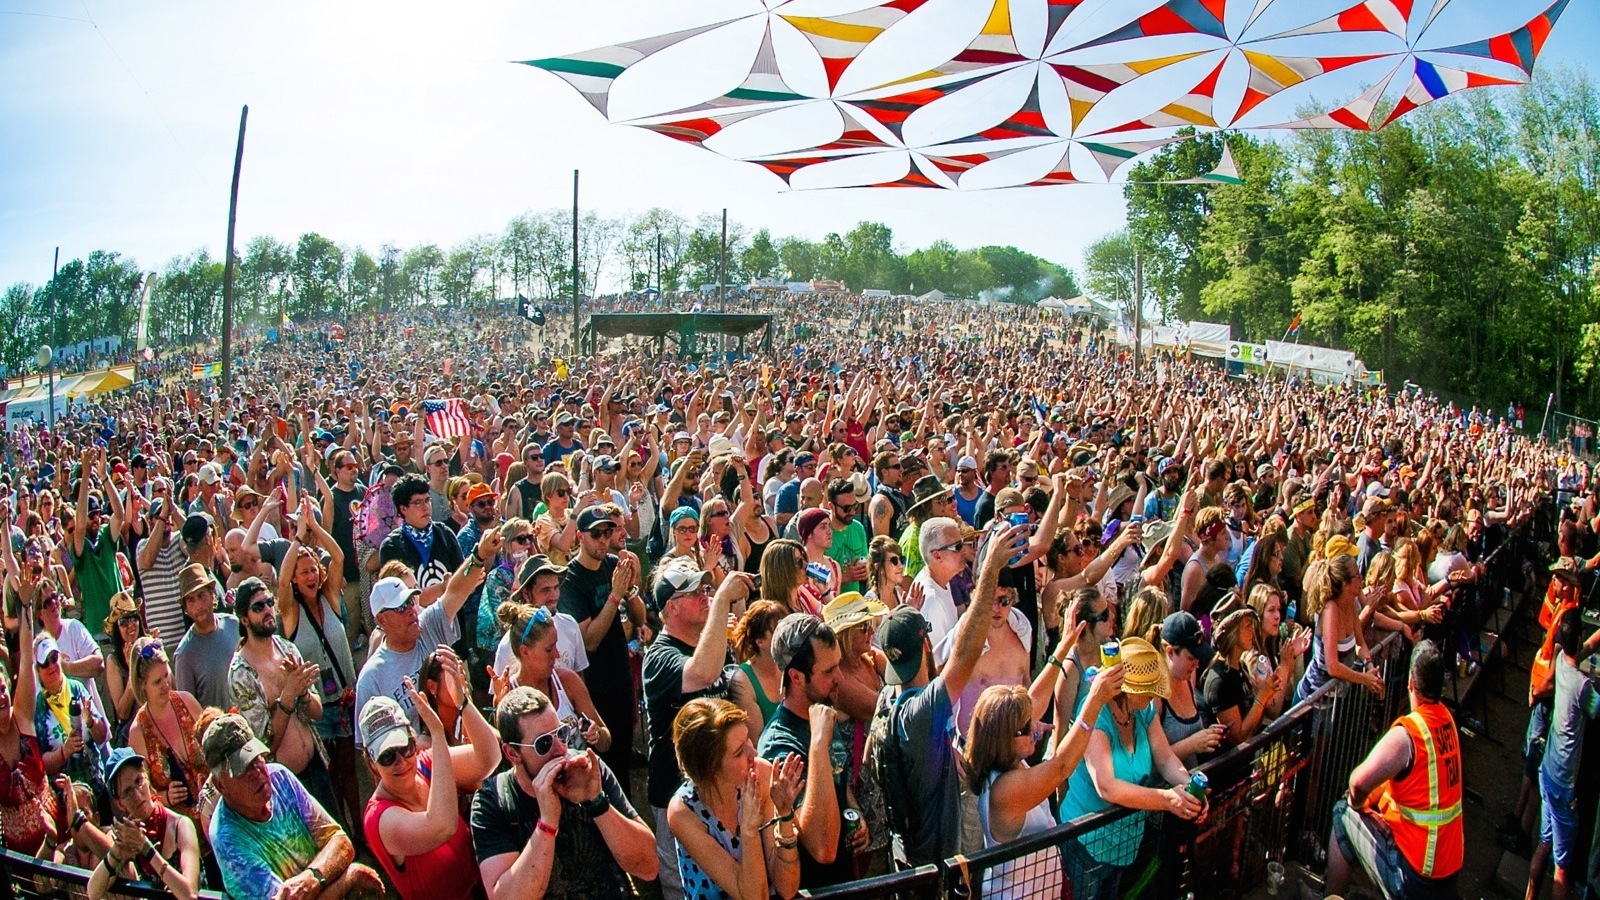 [FEST NEWS] Summer Camp Completes Its Already Awe-Inspiring Lineup